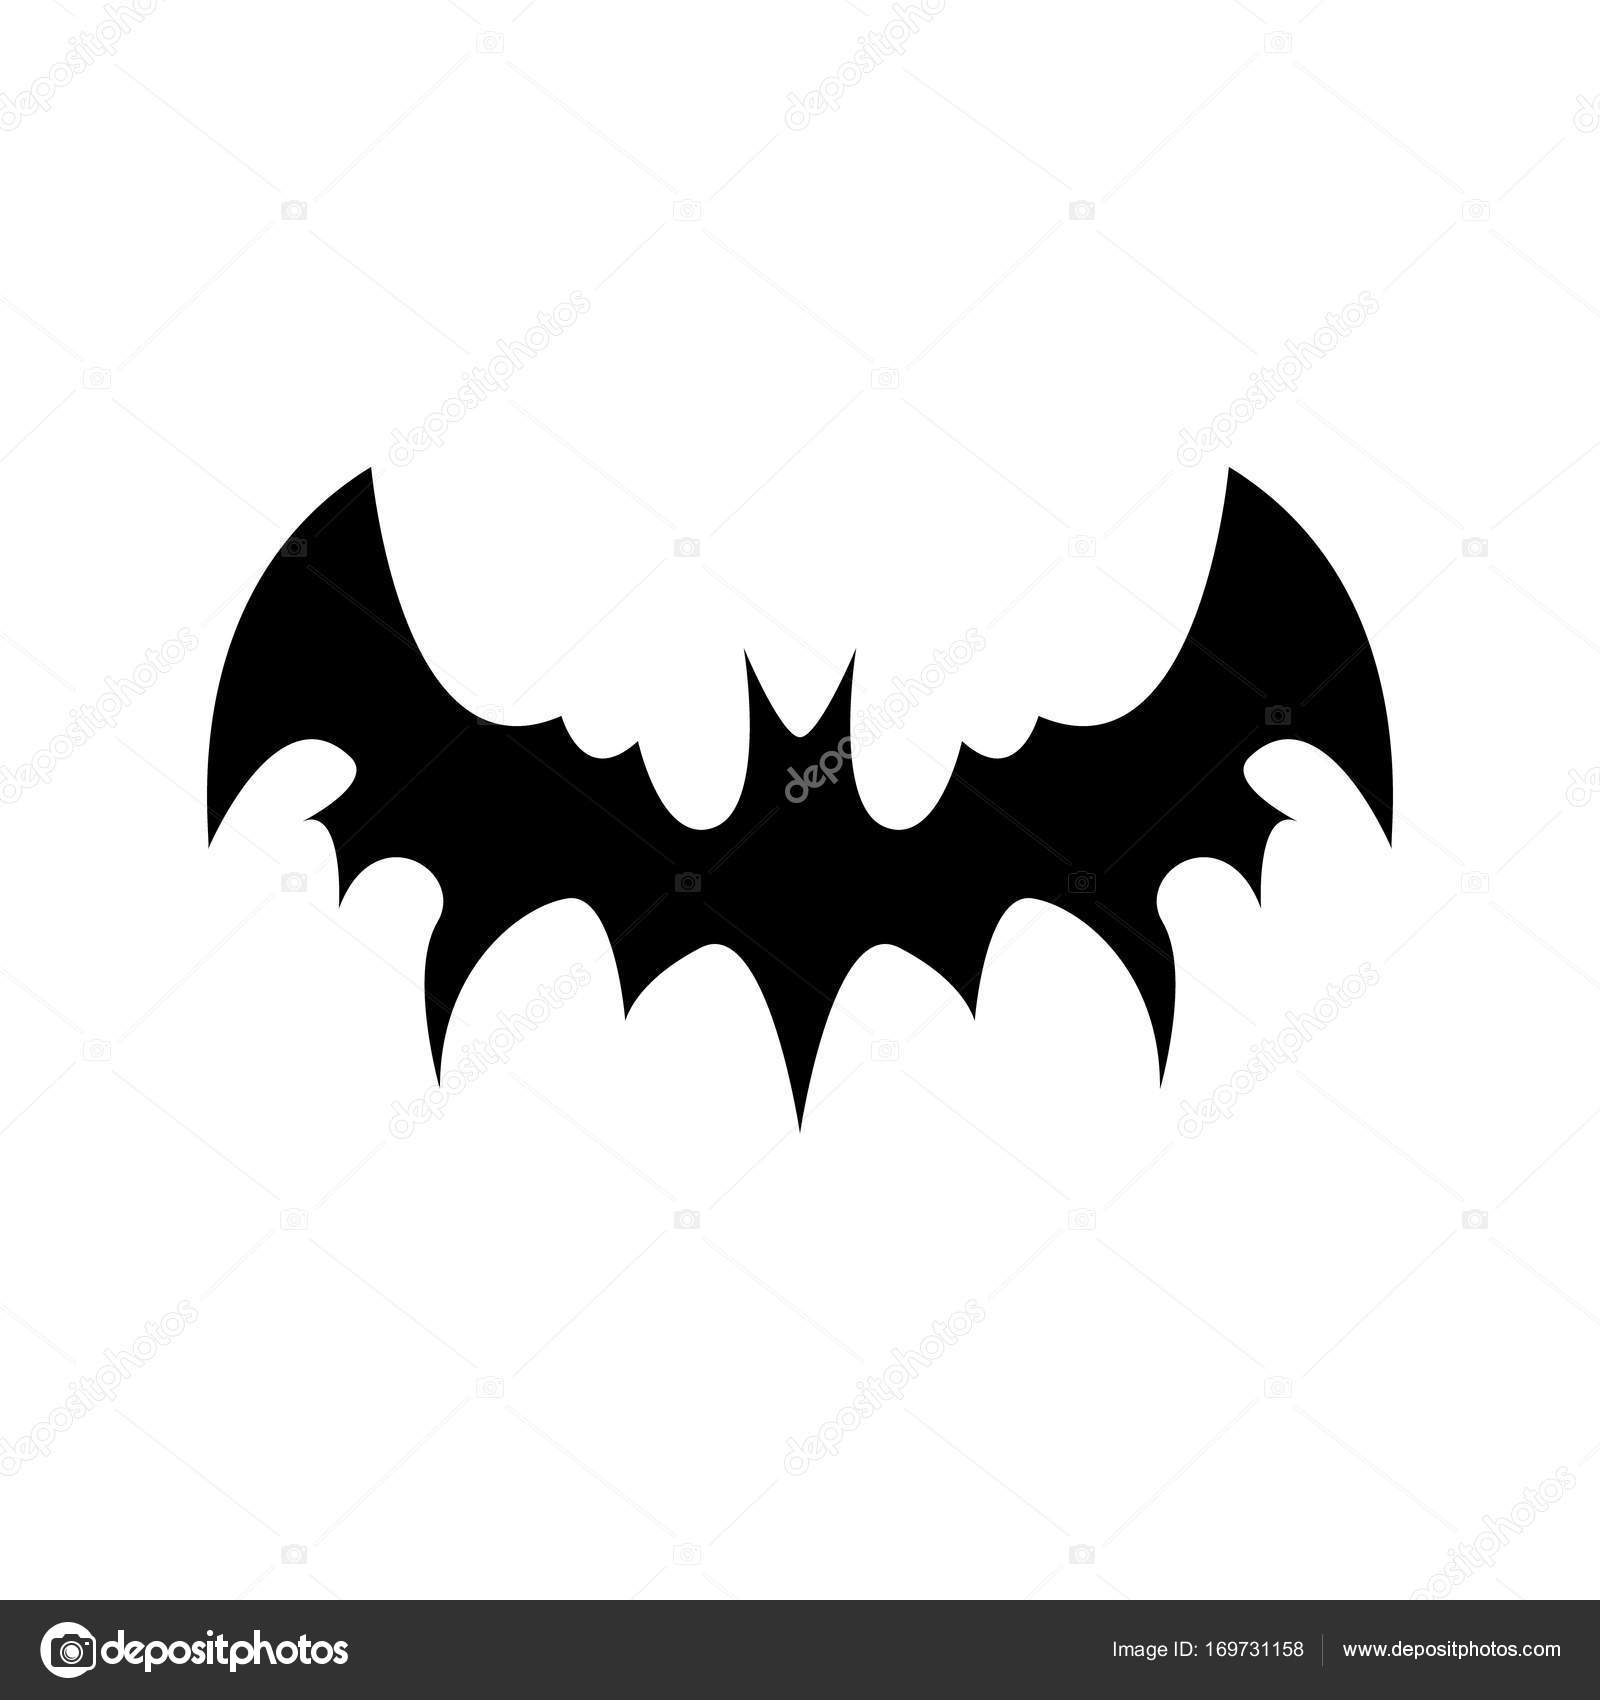 vector halloween black bat animal icon or sign isolated on white